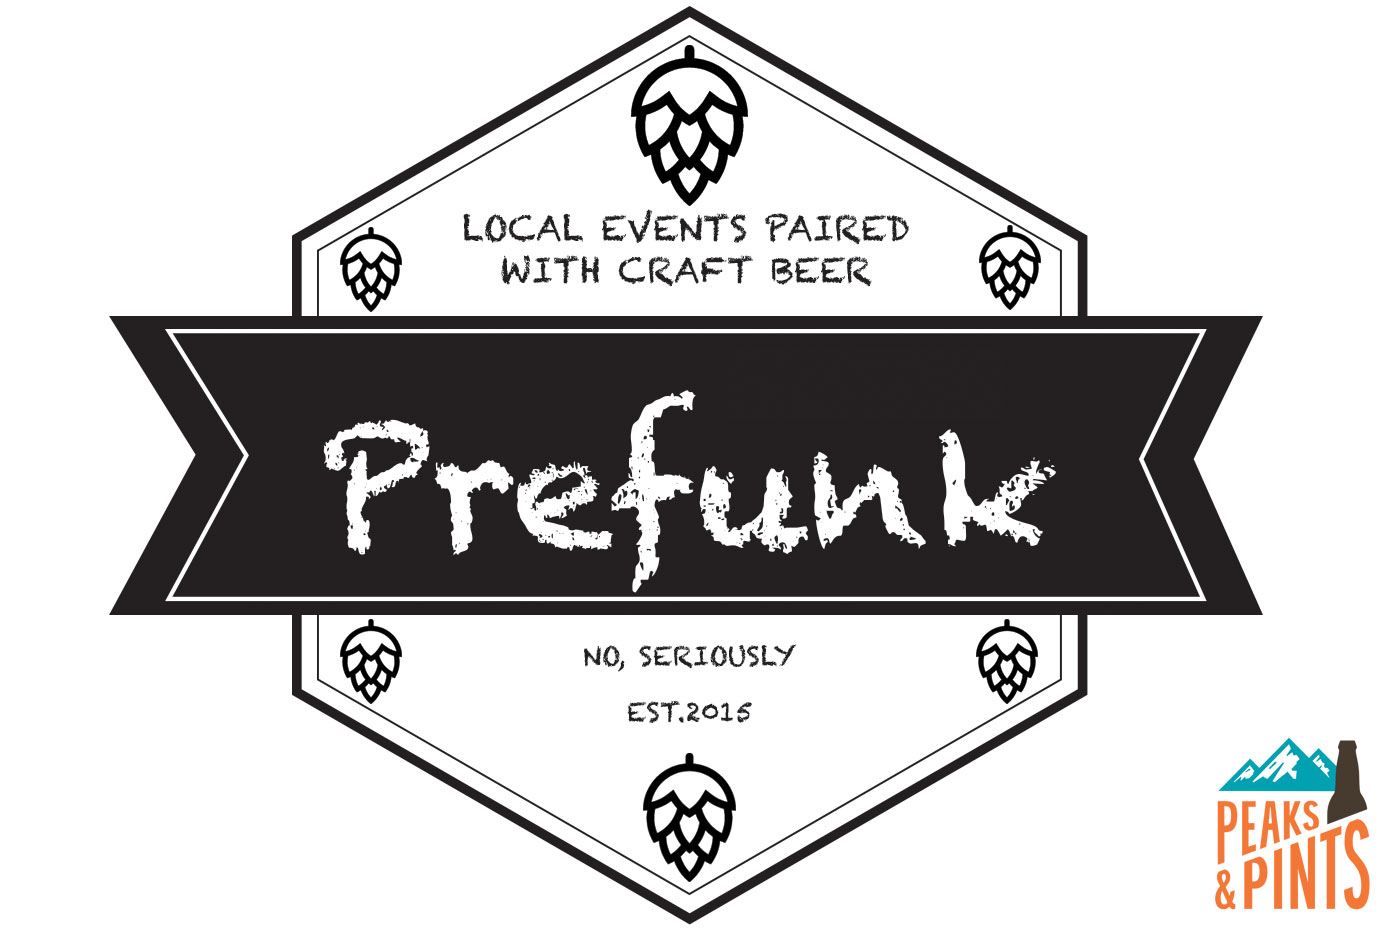 Wednesday Prefunk Craft Beer Before Cartooning And Thor